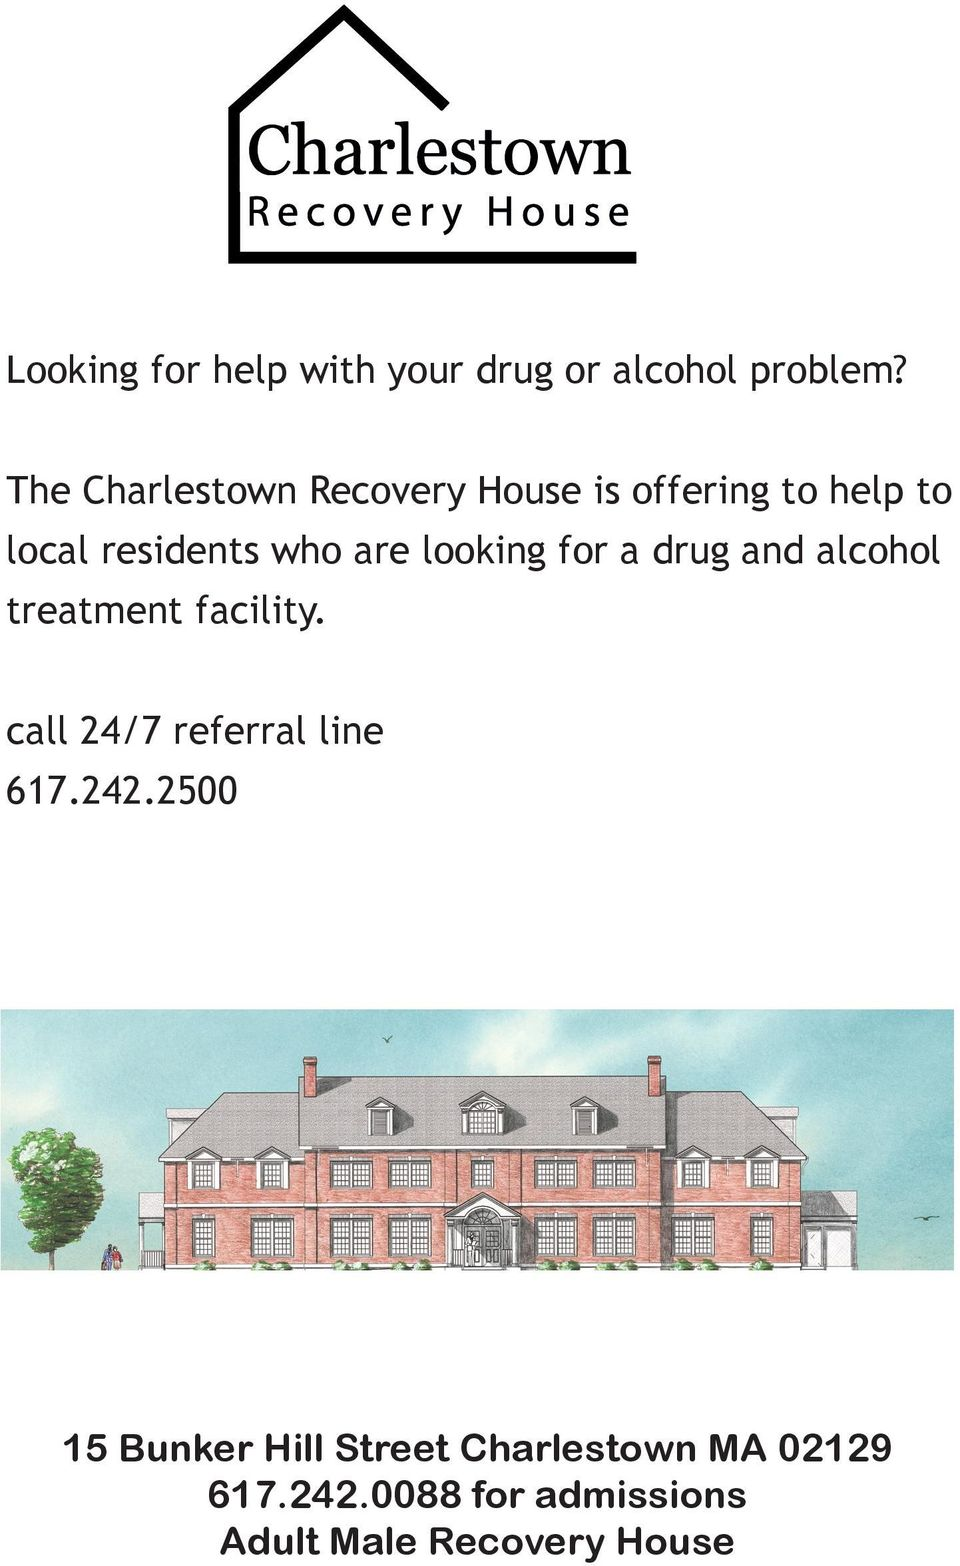 Charlestown treatment facility. residents who want to do something about their drug or alcohol problem. call 24/7 referral line 617.242.